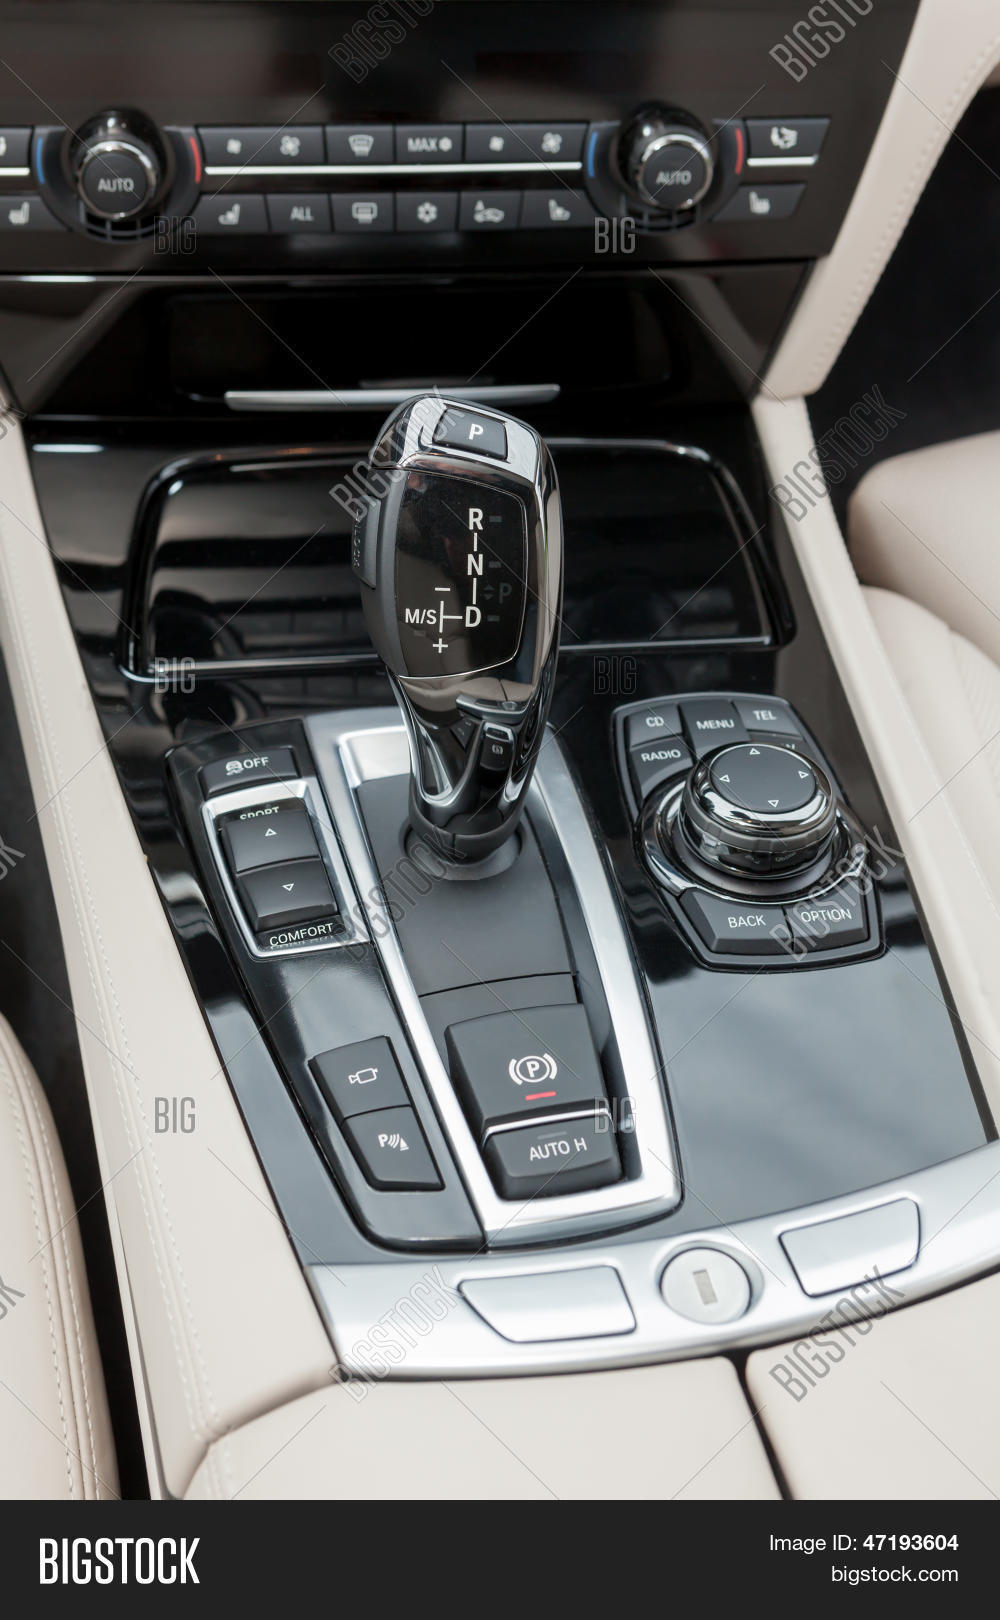 Automatic Gear Shifter Image & Photo (Free Trial) | Bigstock